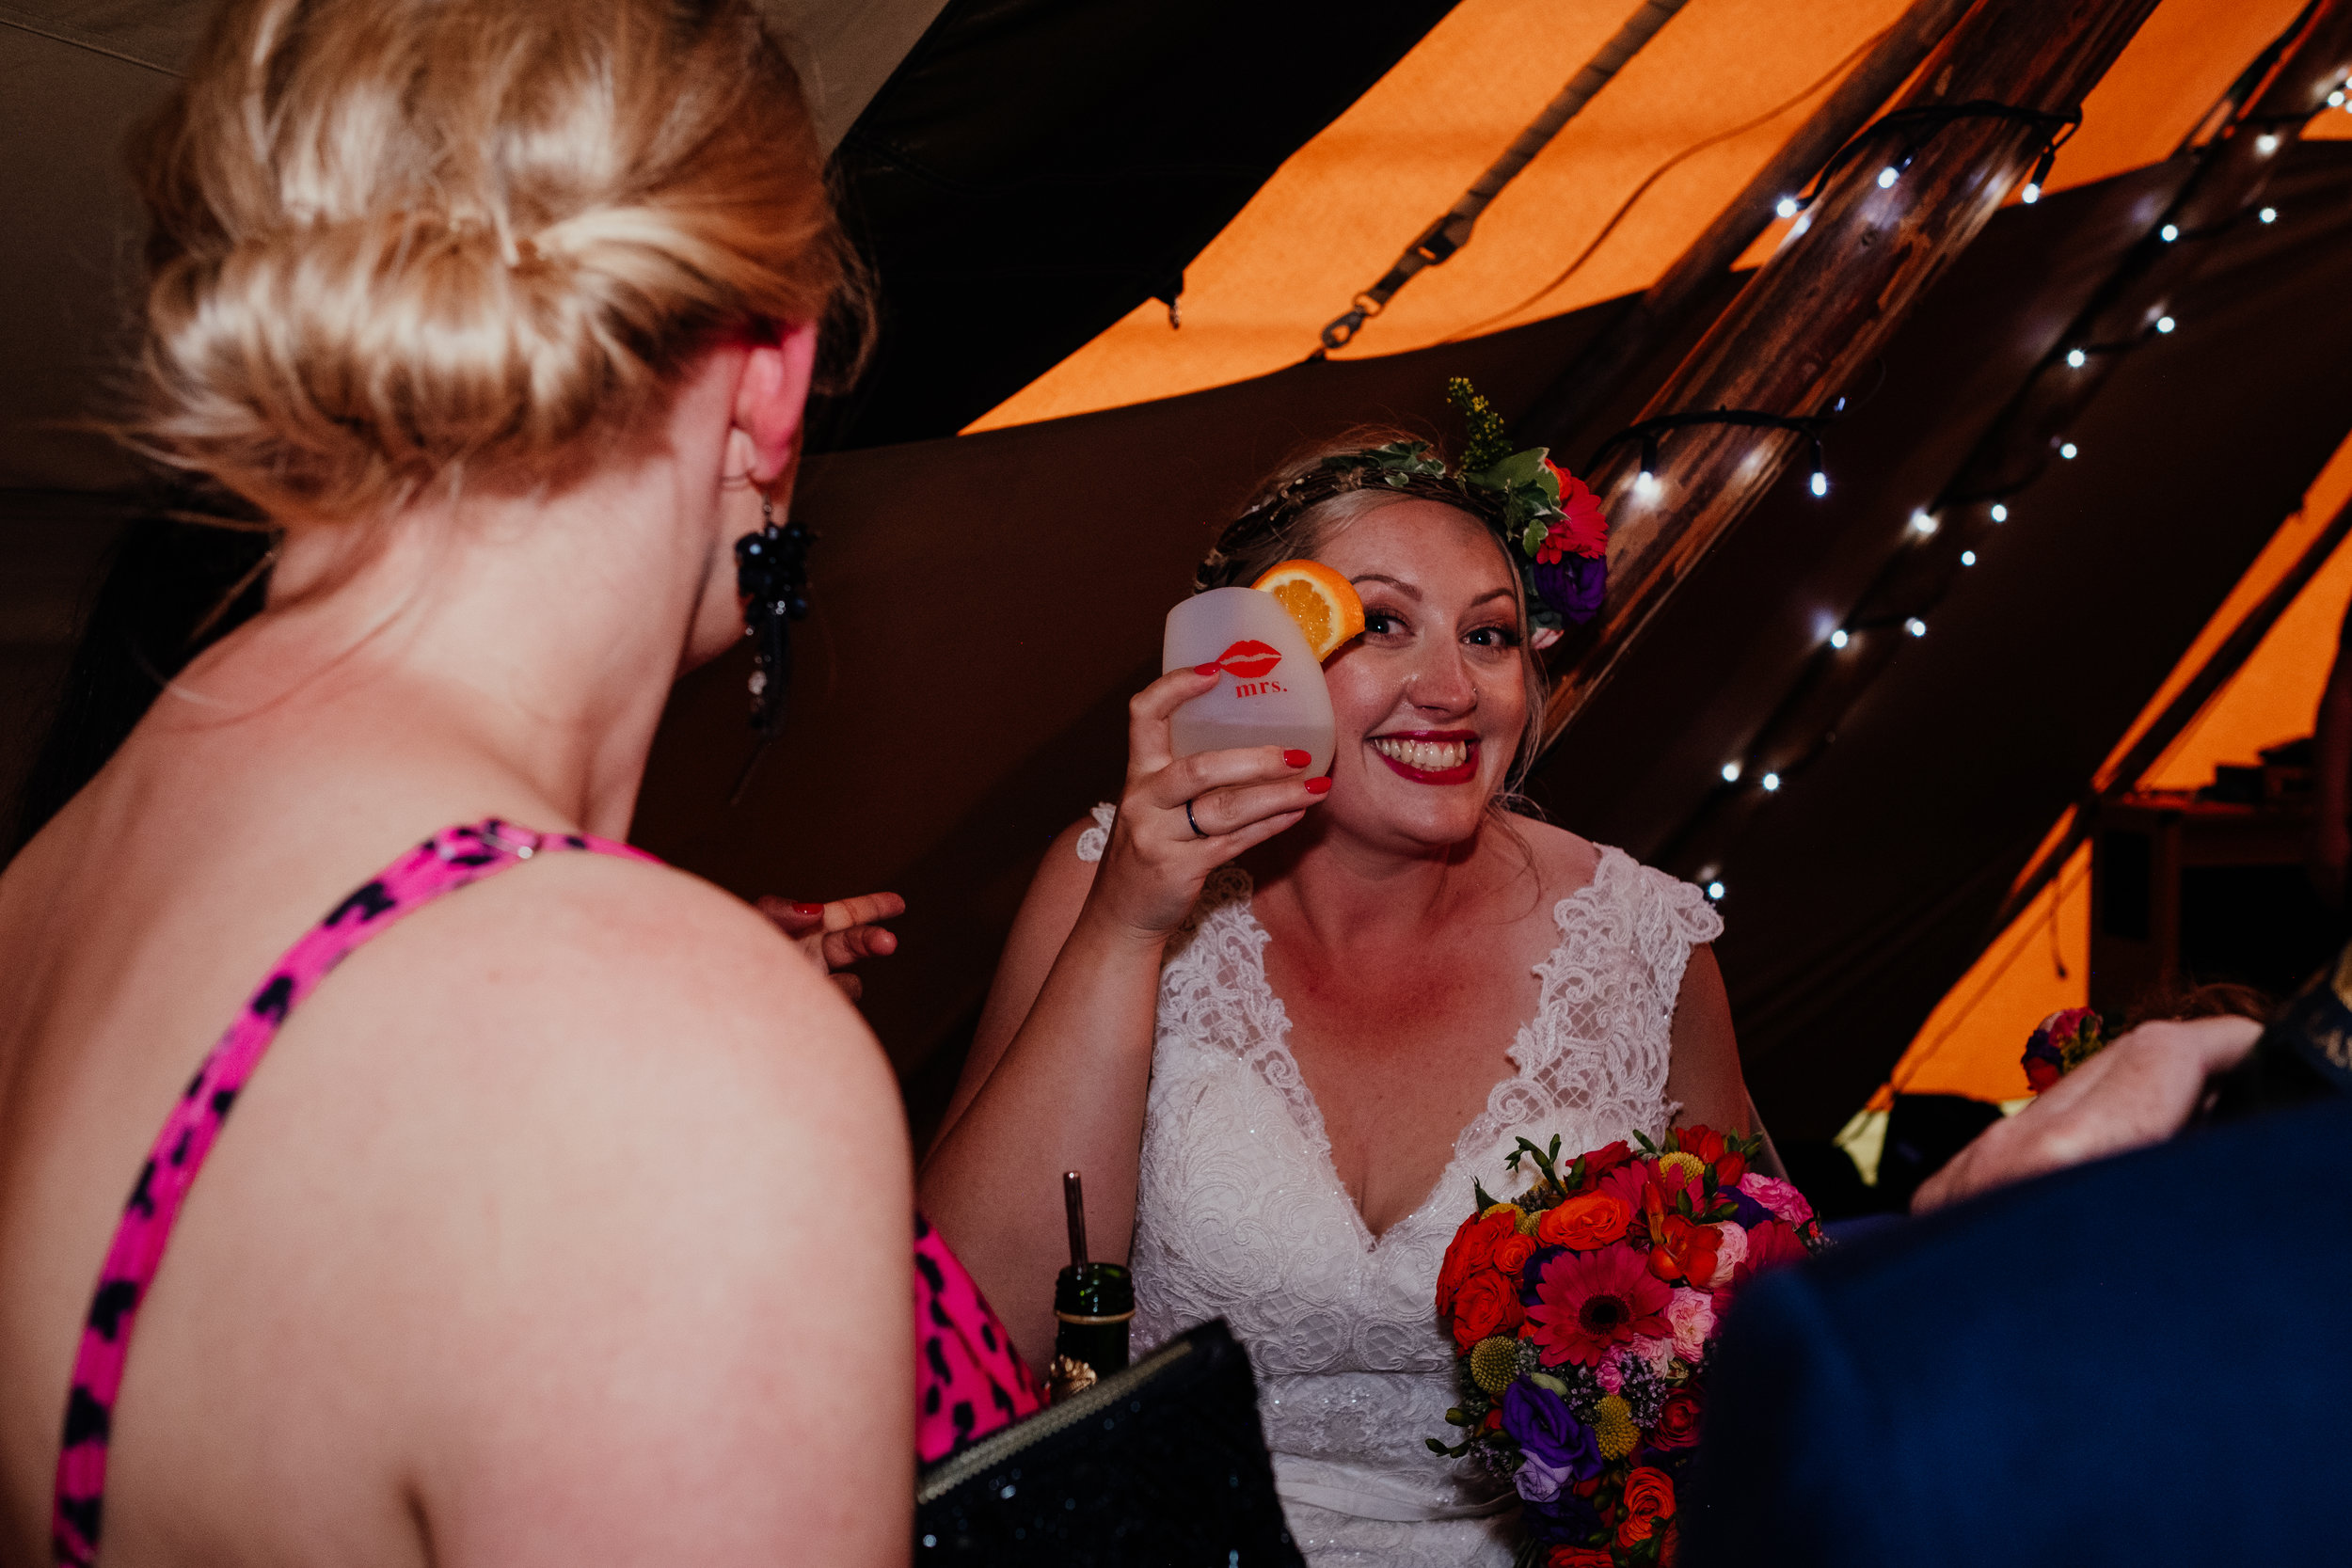 Bride drinks out of cup with 'mrs' on the side